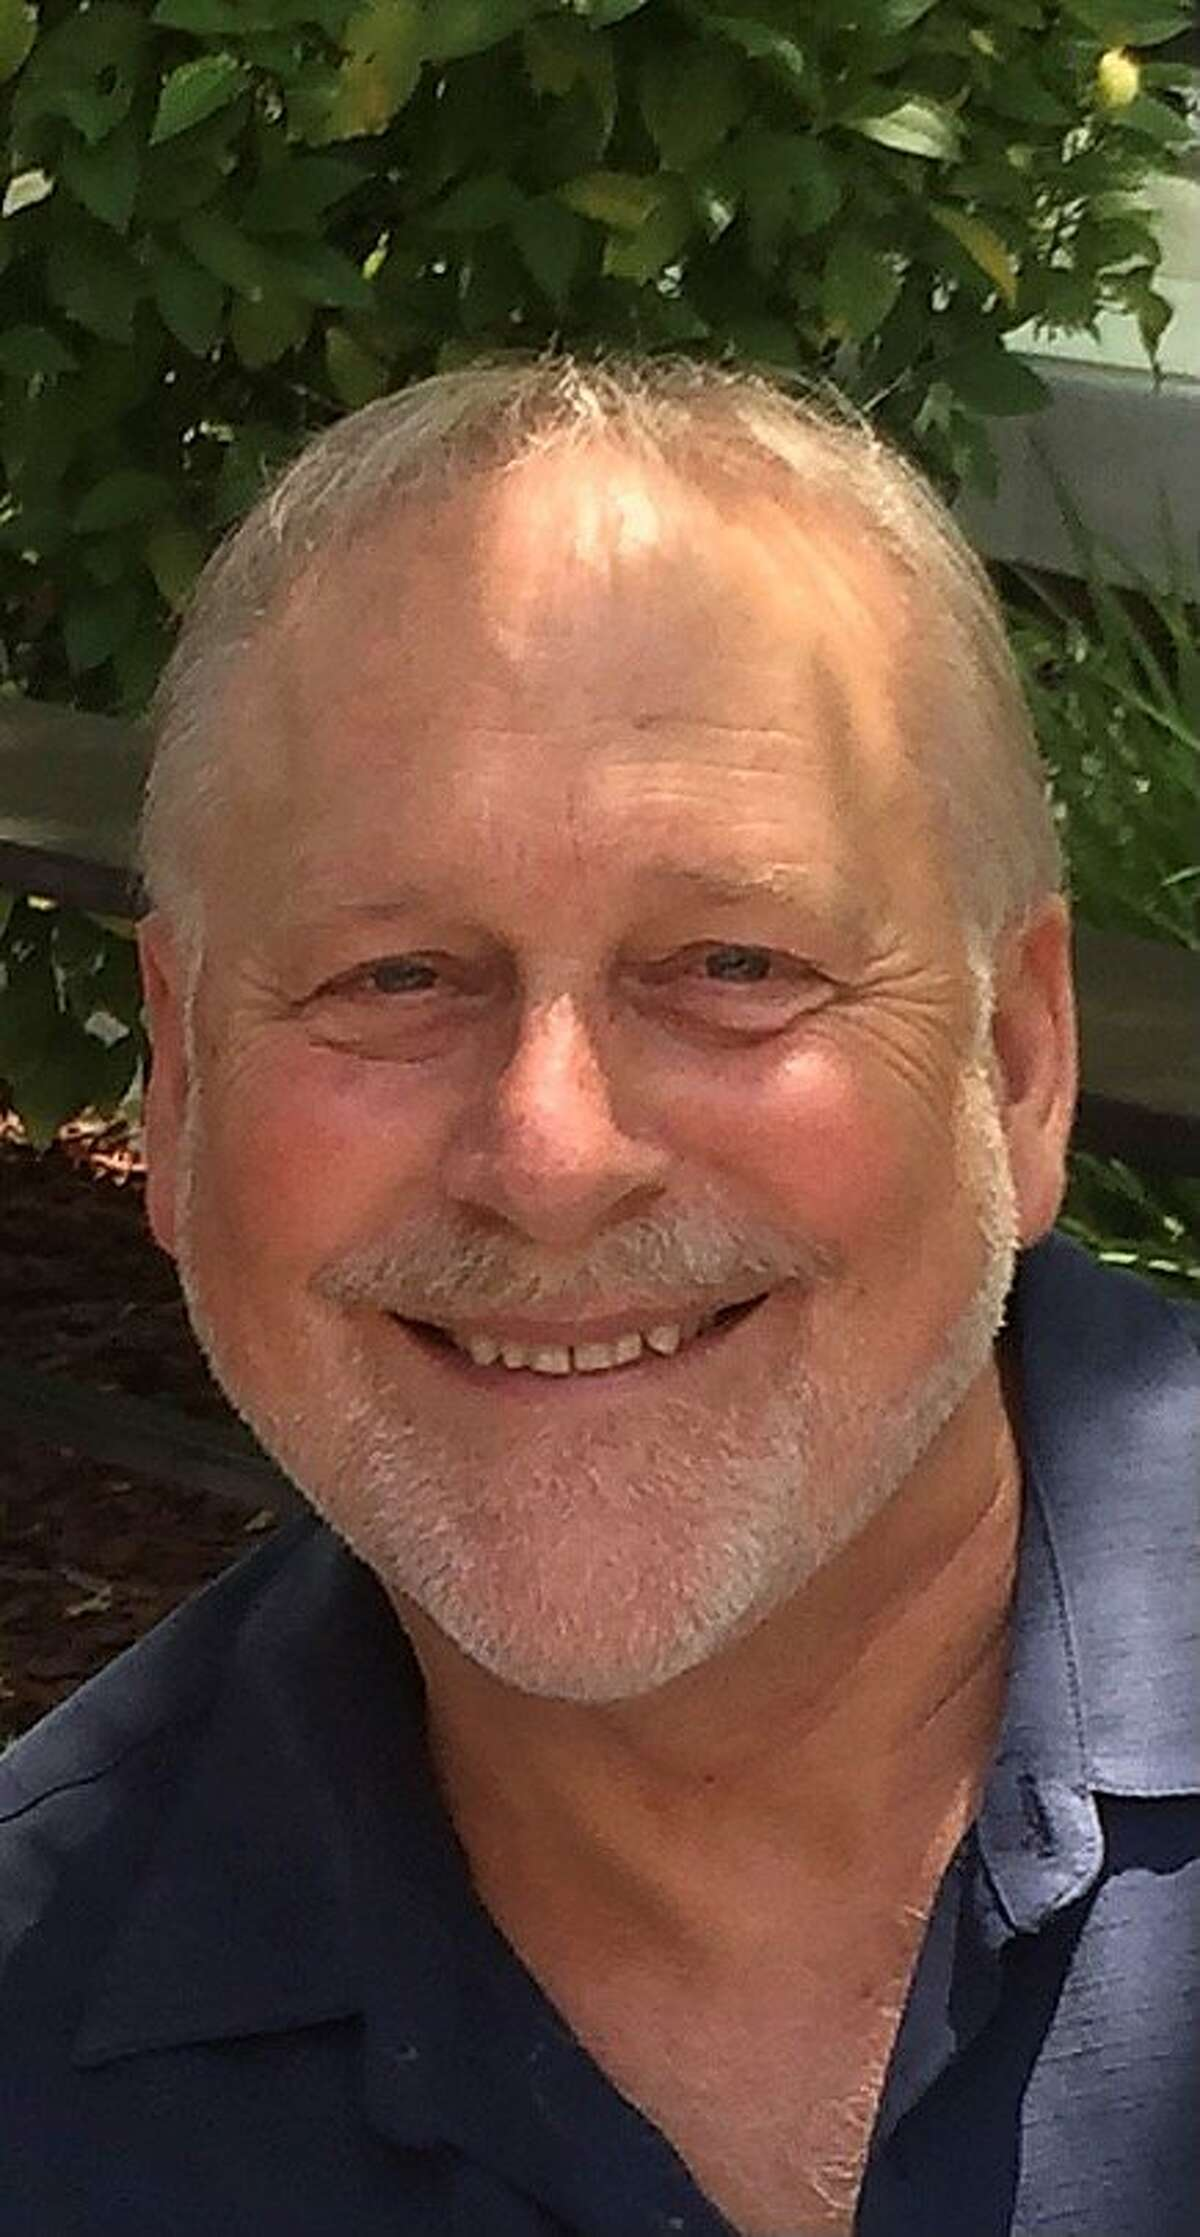 Richard Thorp, past president of the California Medical Association, won state Senate confirmation Monday to the state board that licenses and regulates doctors.